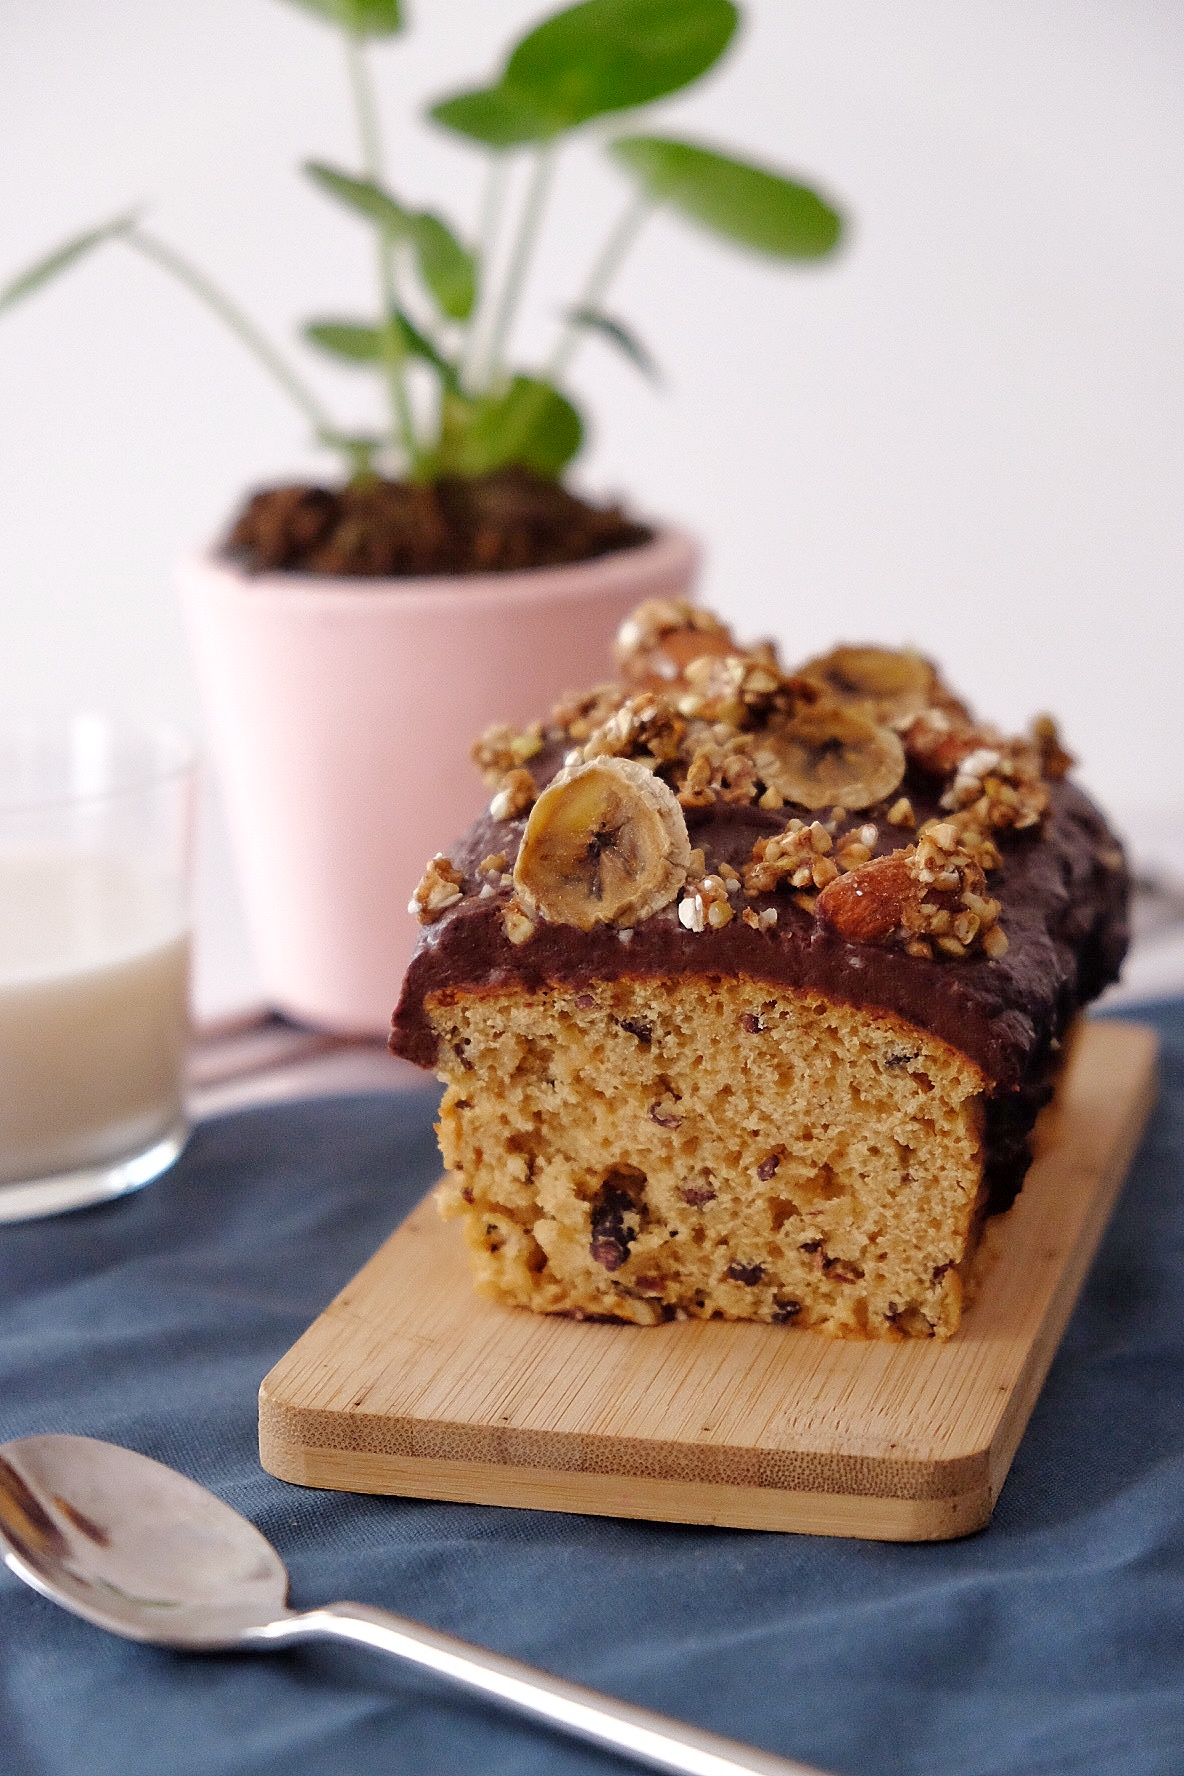 Vegan cake with orange blossom water and crispy muesli